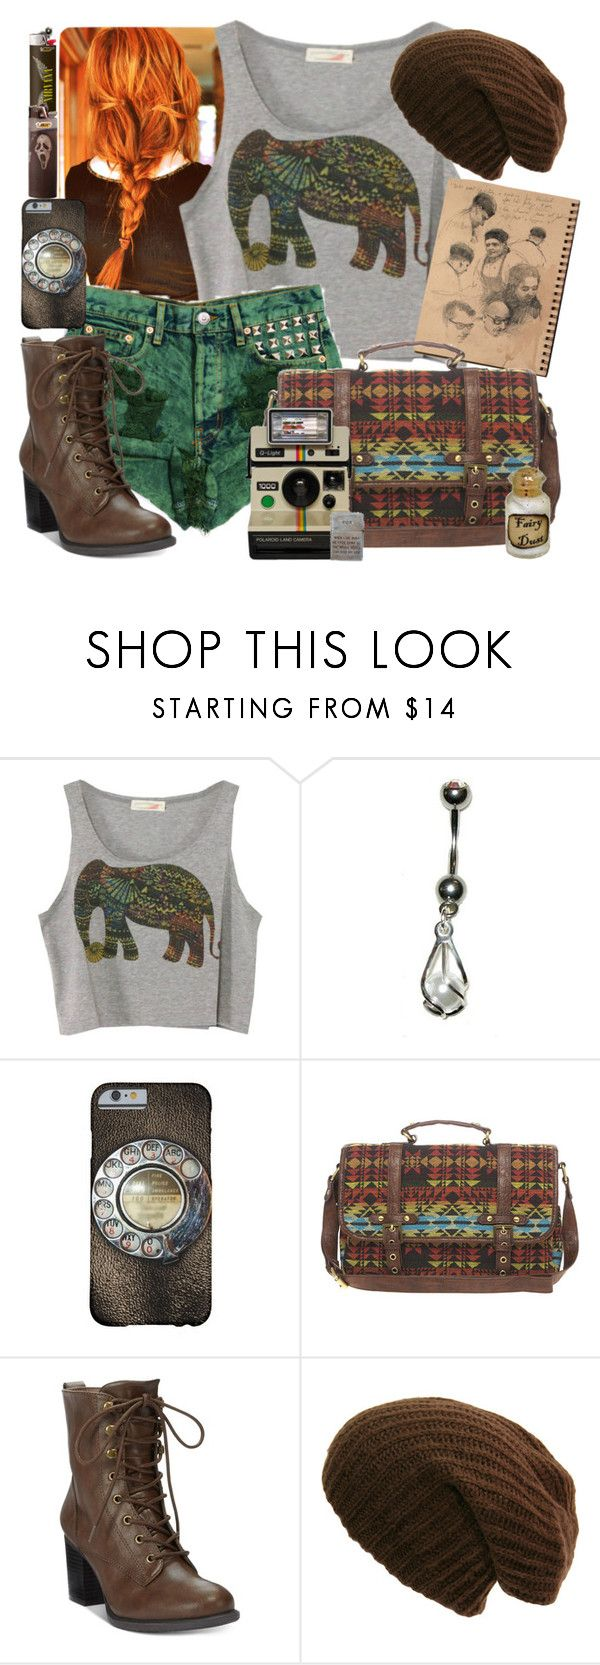 """Untitled #535"" by neverland-is-just-a-dream-away ❤ liked on Polyvore featuring ASOS, American Rag Cie and Dollhouse"